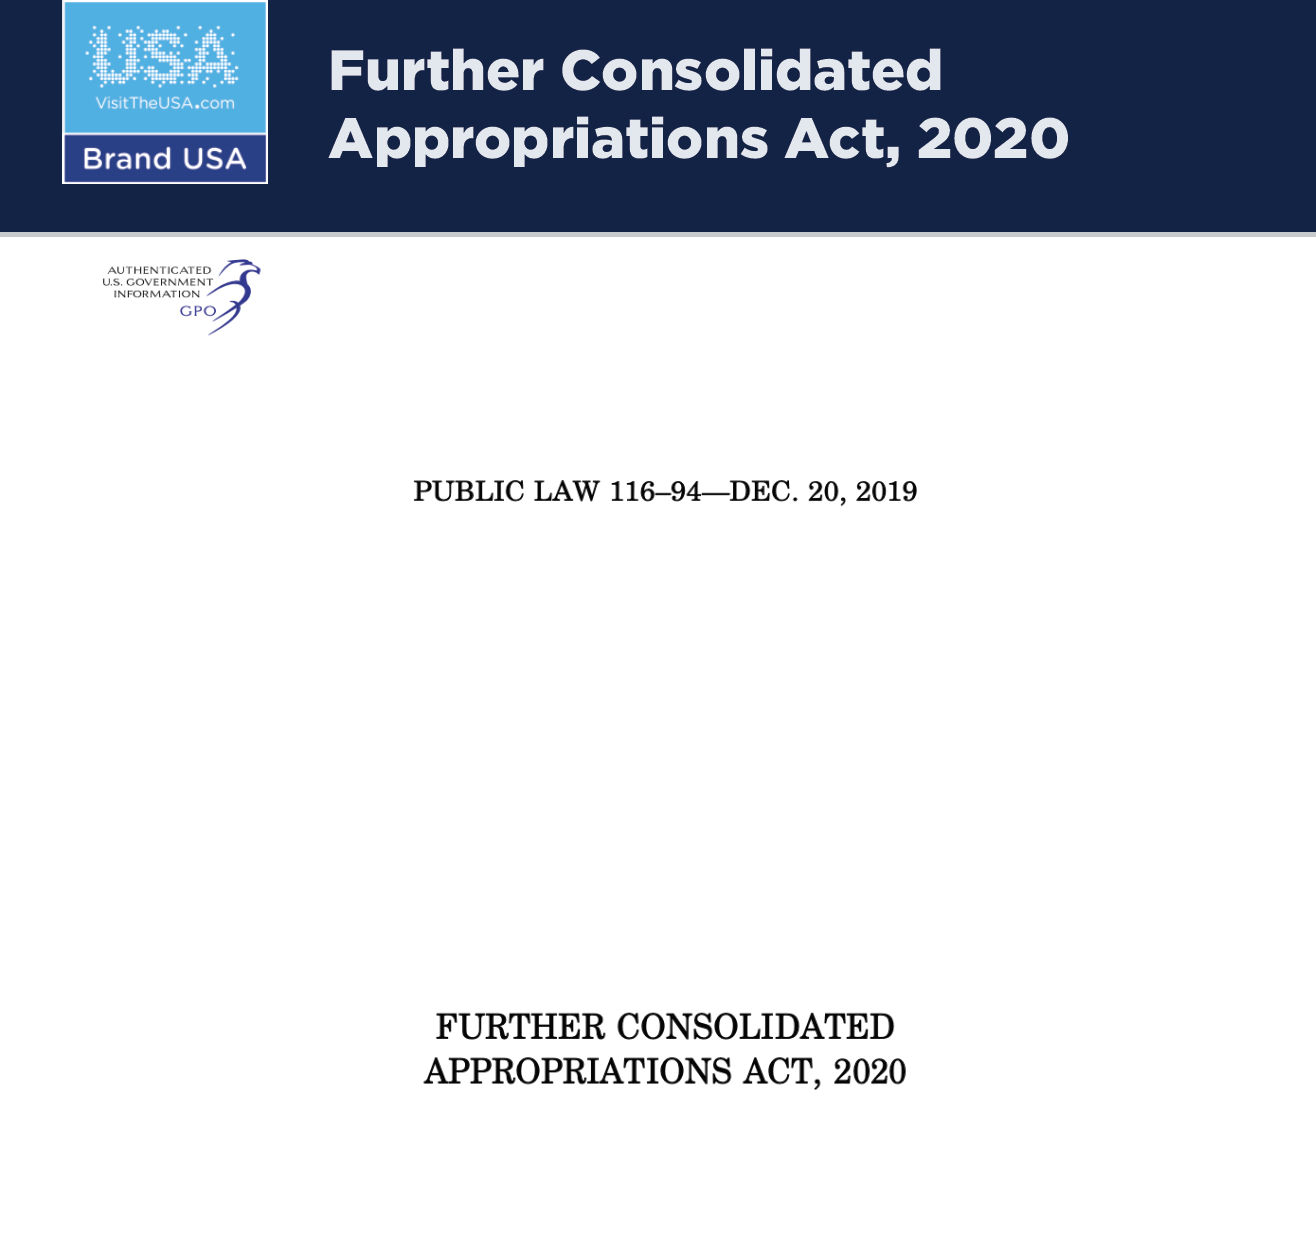 Further Consolidated Appropriations Act, 2020